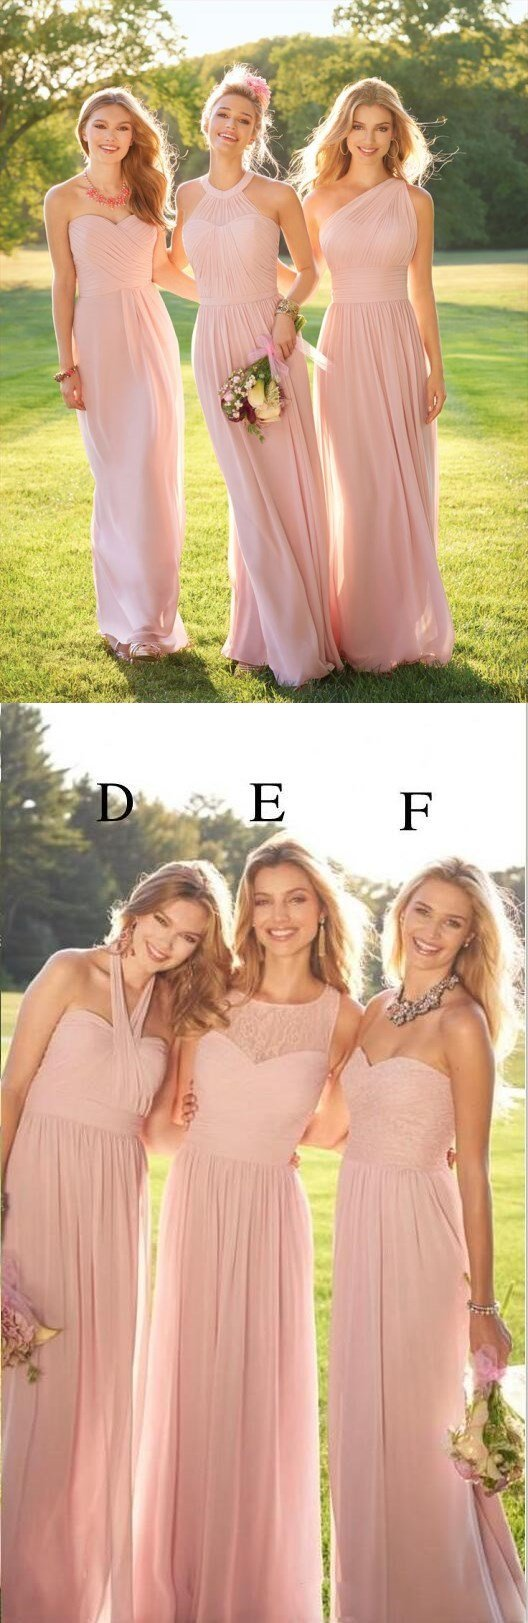 2018 Pastel Pink Cheap Long Lace  Chiffon Bridesmaid Dresses, Mismatched Popular Custom Bridesmaid Dress For Wedding Guest, WG247